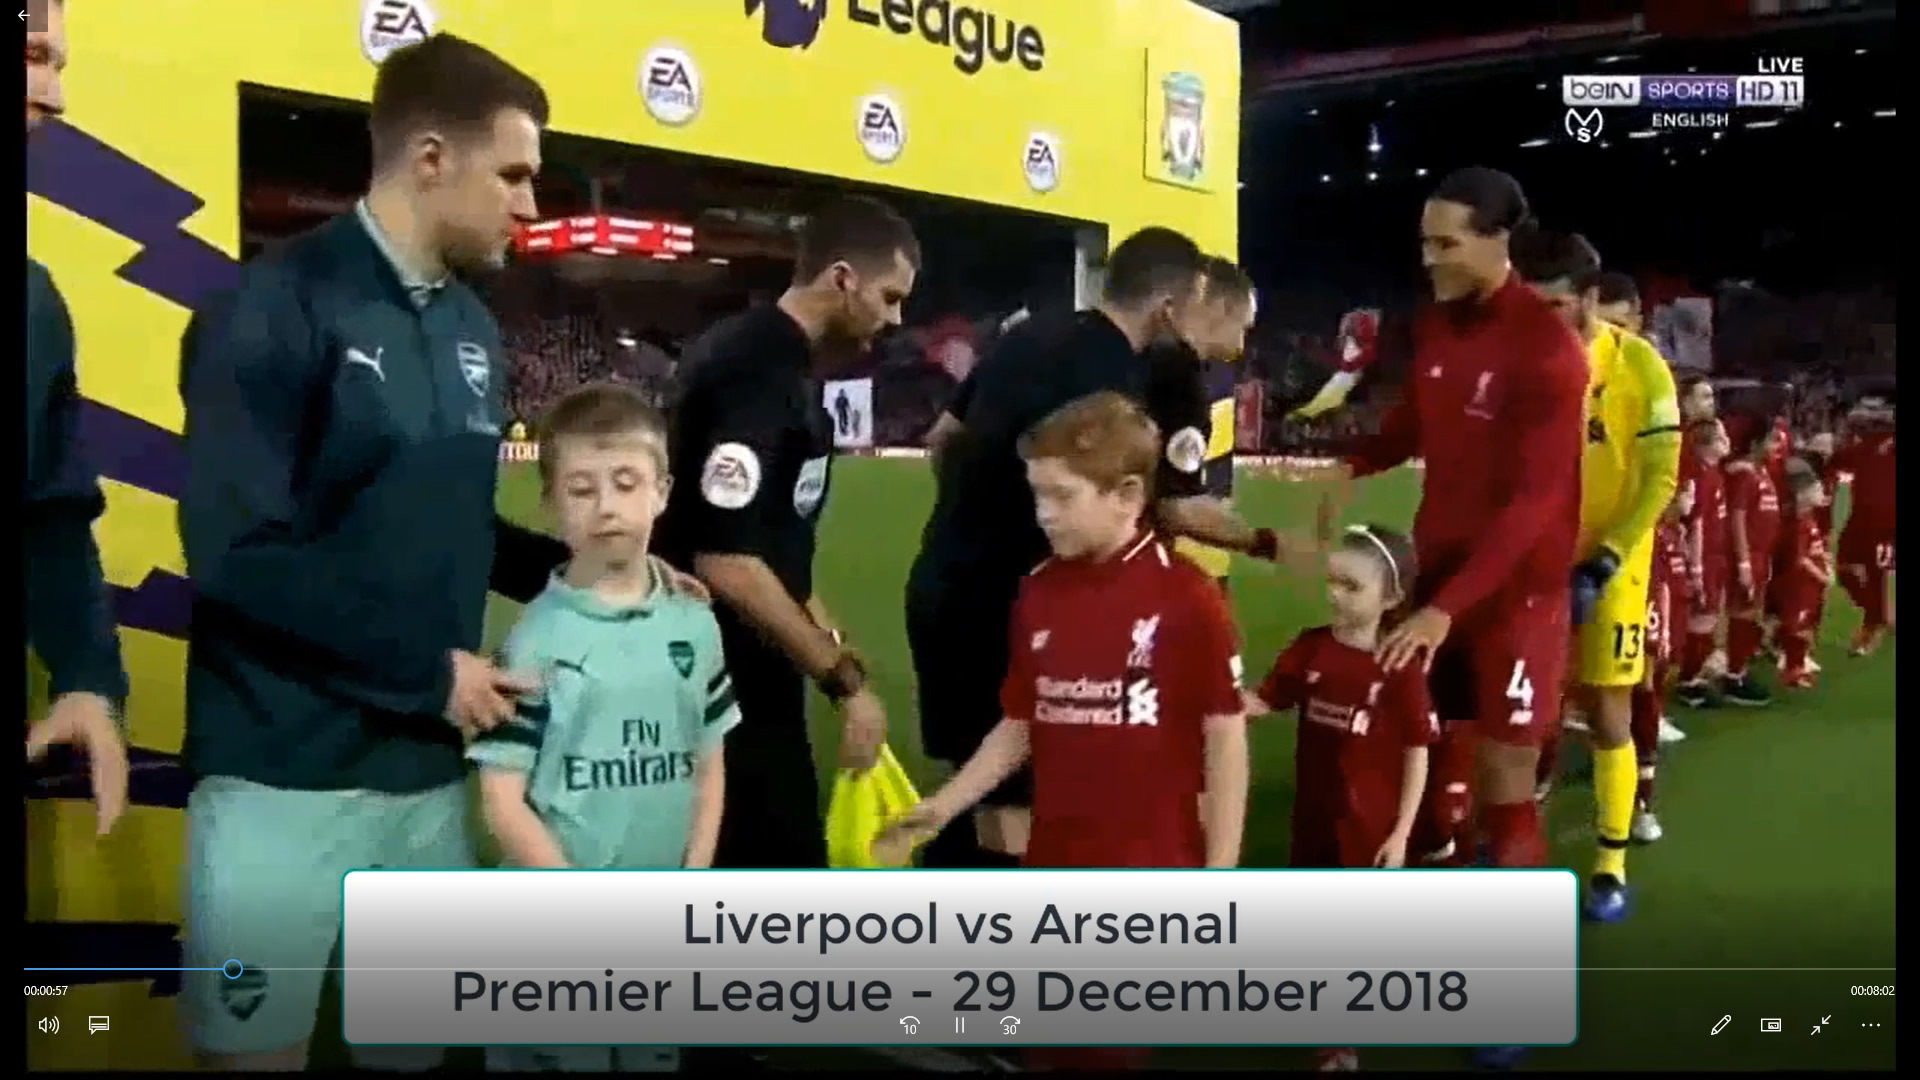 Liverpool 5-1 Arsenal